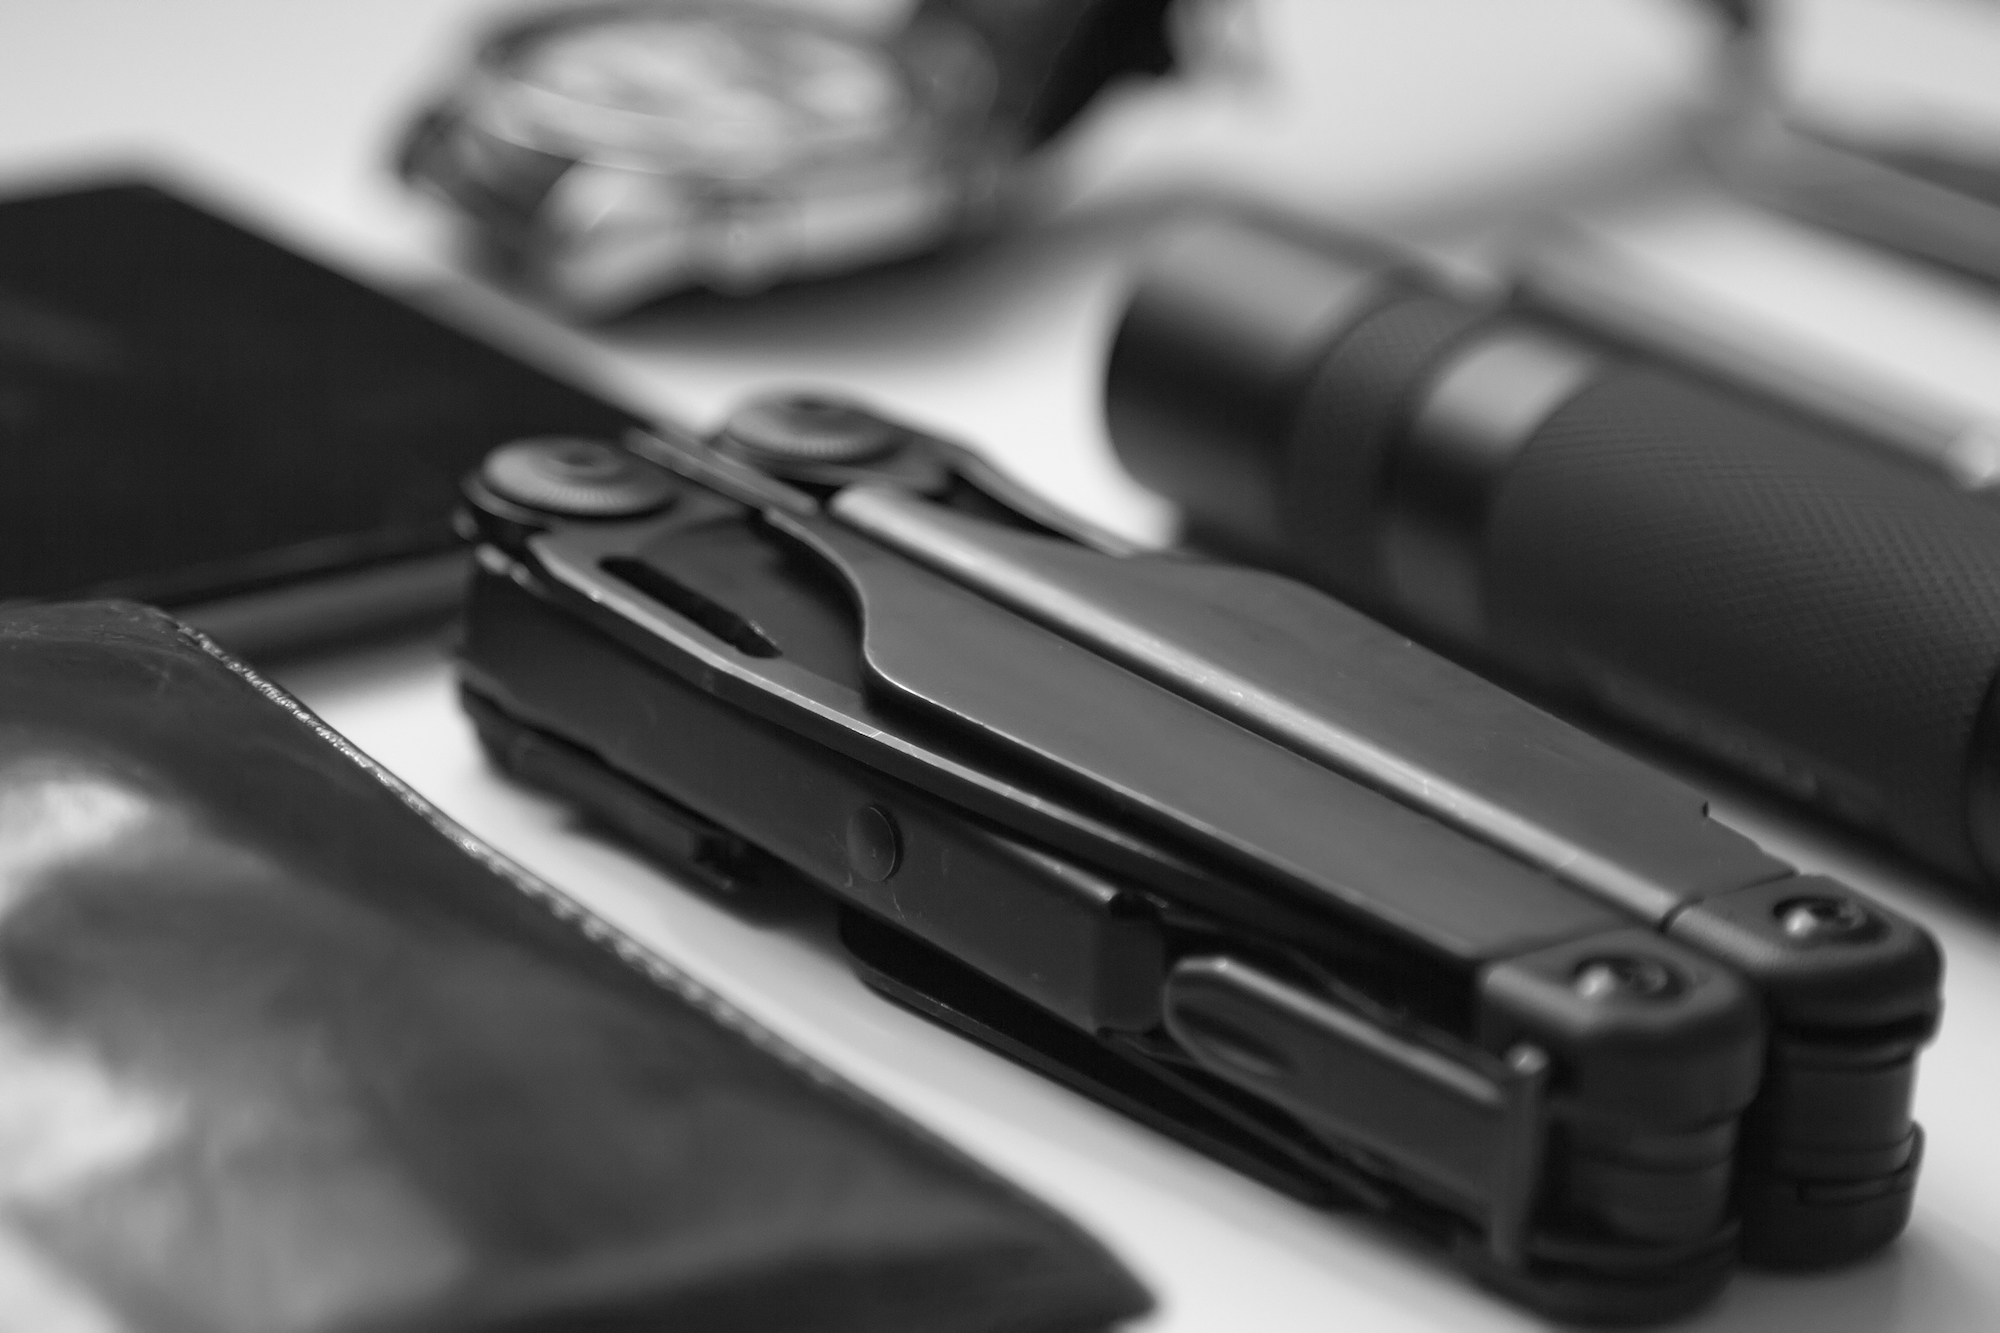 everyday carry ( EDC ) items for men in black color on white background - multi tool ( multitool ) close up on white backround with small depth of field. Modern city set. Business and craft concept